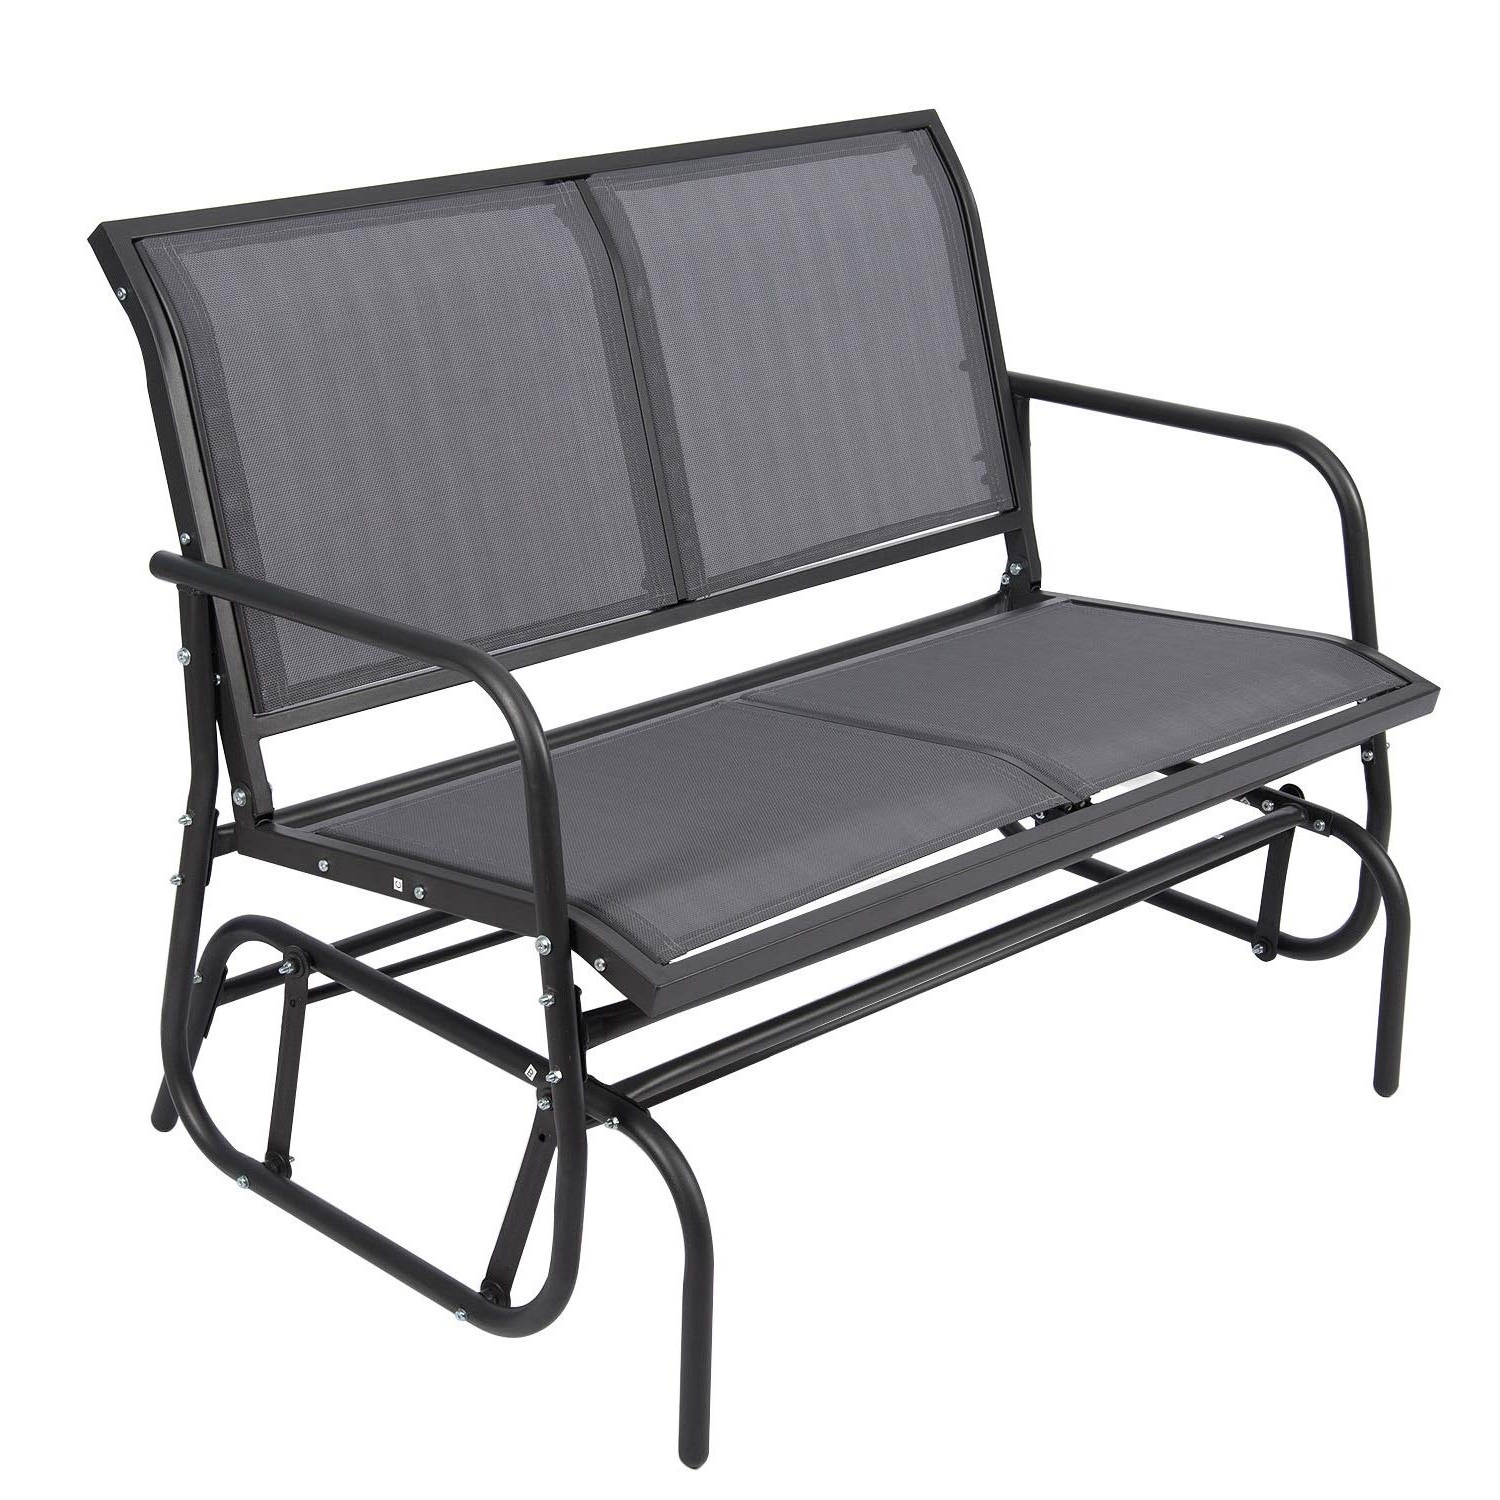 Outdoor Glider Chair For 2 Person, Patio Swing Garden Loveseat, Rocking Seating Textilene & Stable Steel Frame (dark Grey) Regarding Most Up To Date Rocking Love Seats Glider Swing Benches With Sturdy Frame (Gallery 13 of 30)